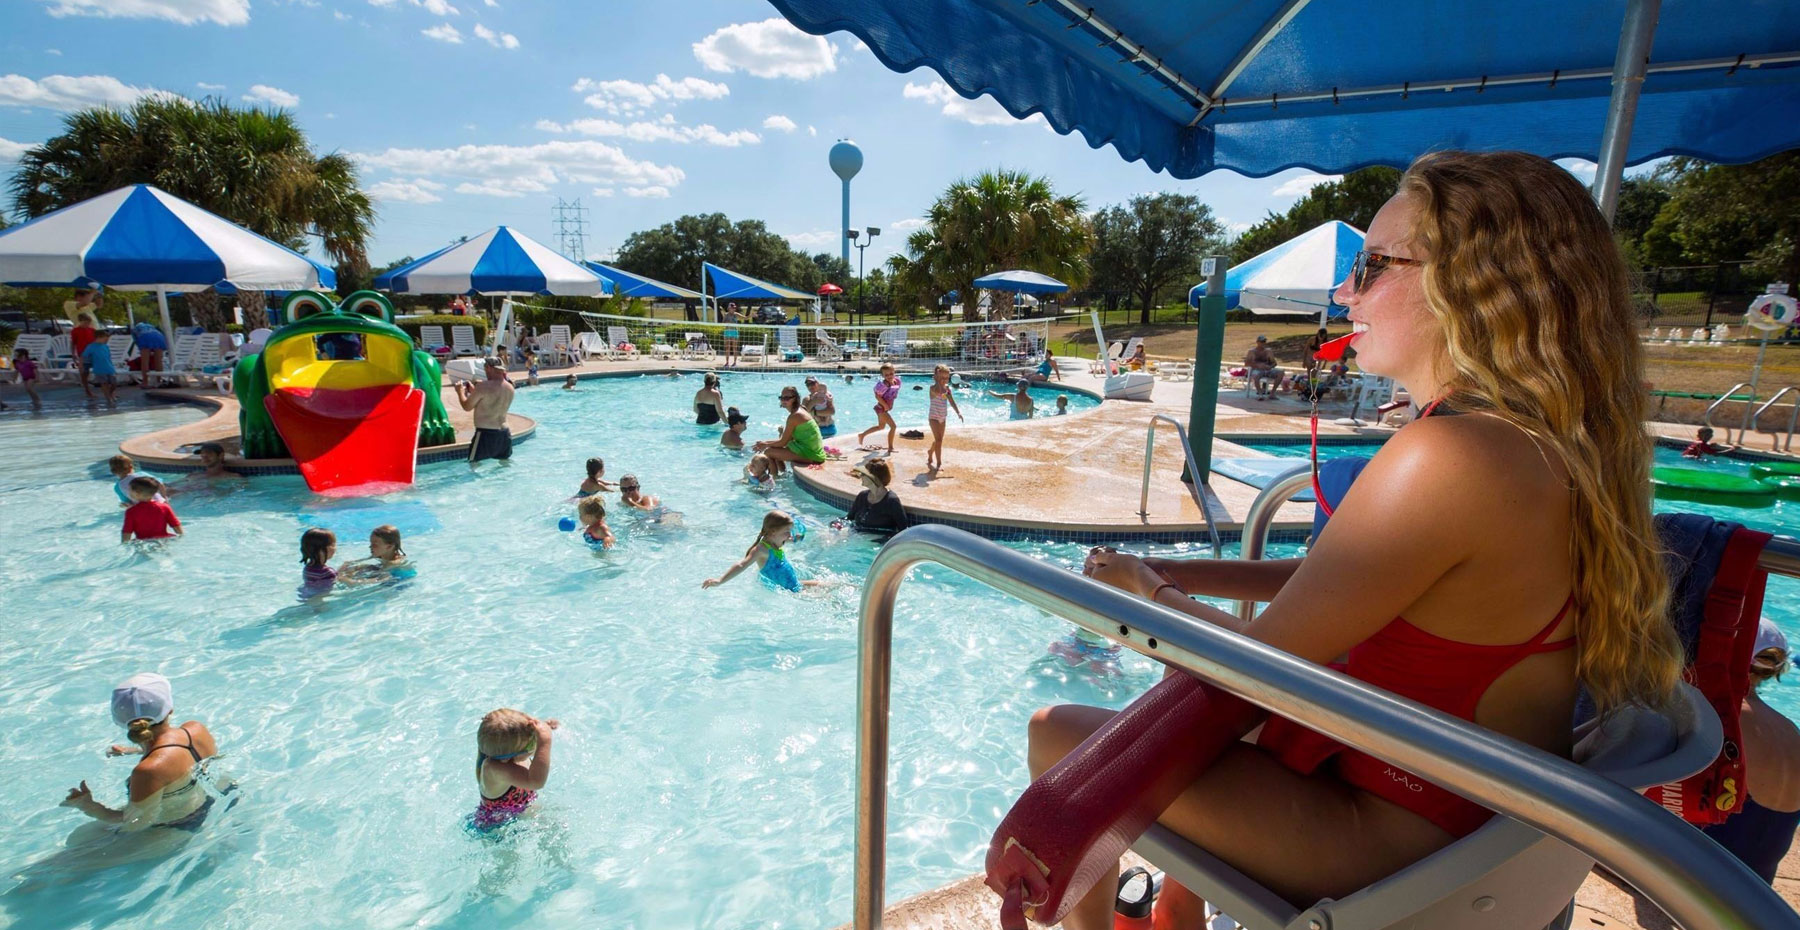 Community waterpark in Lakeway TX with residents enjoying the water and amenities.